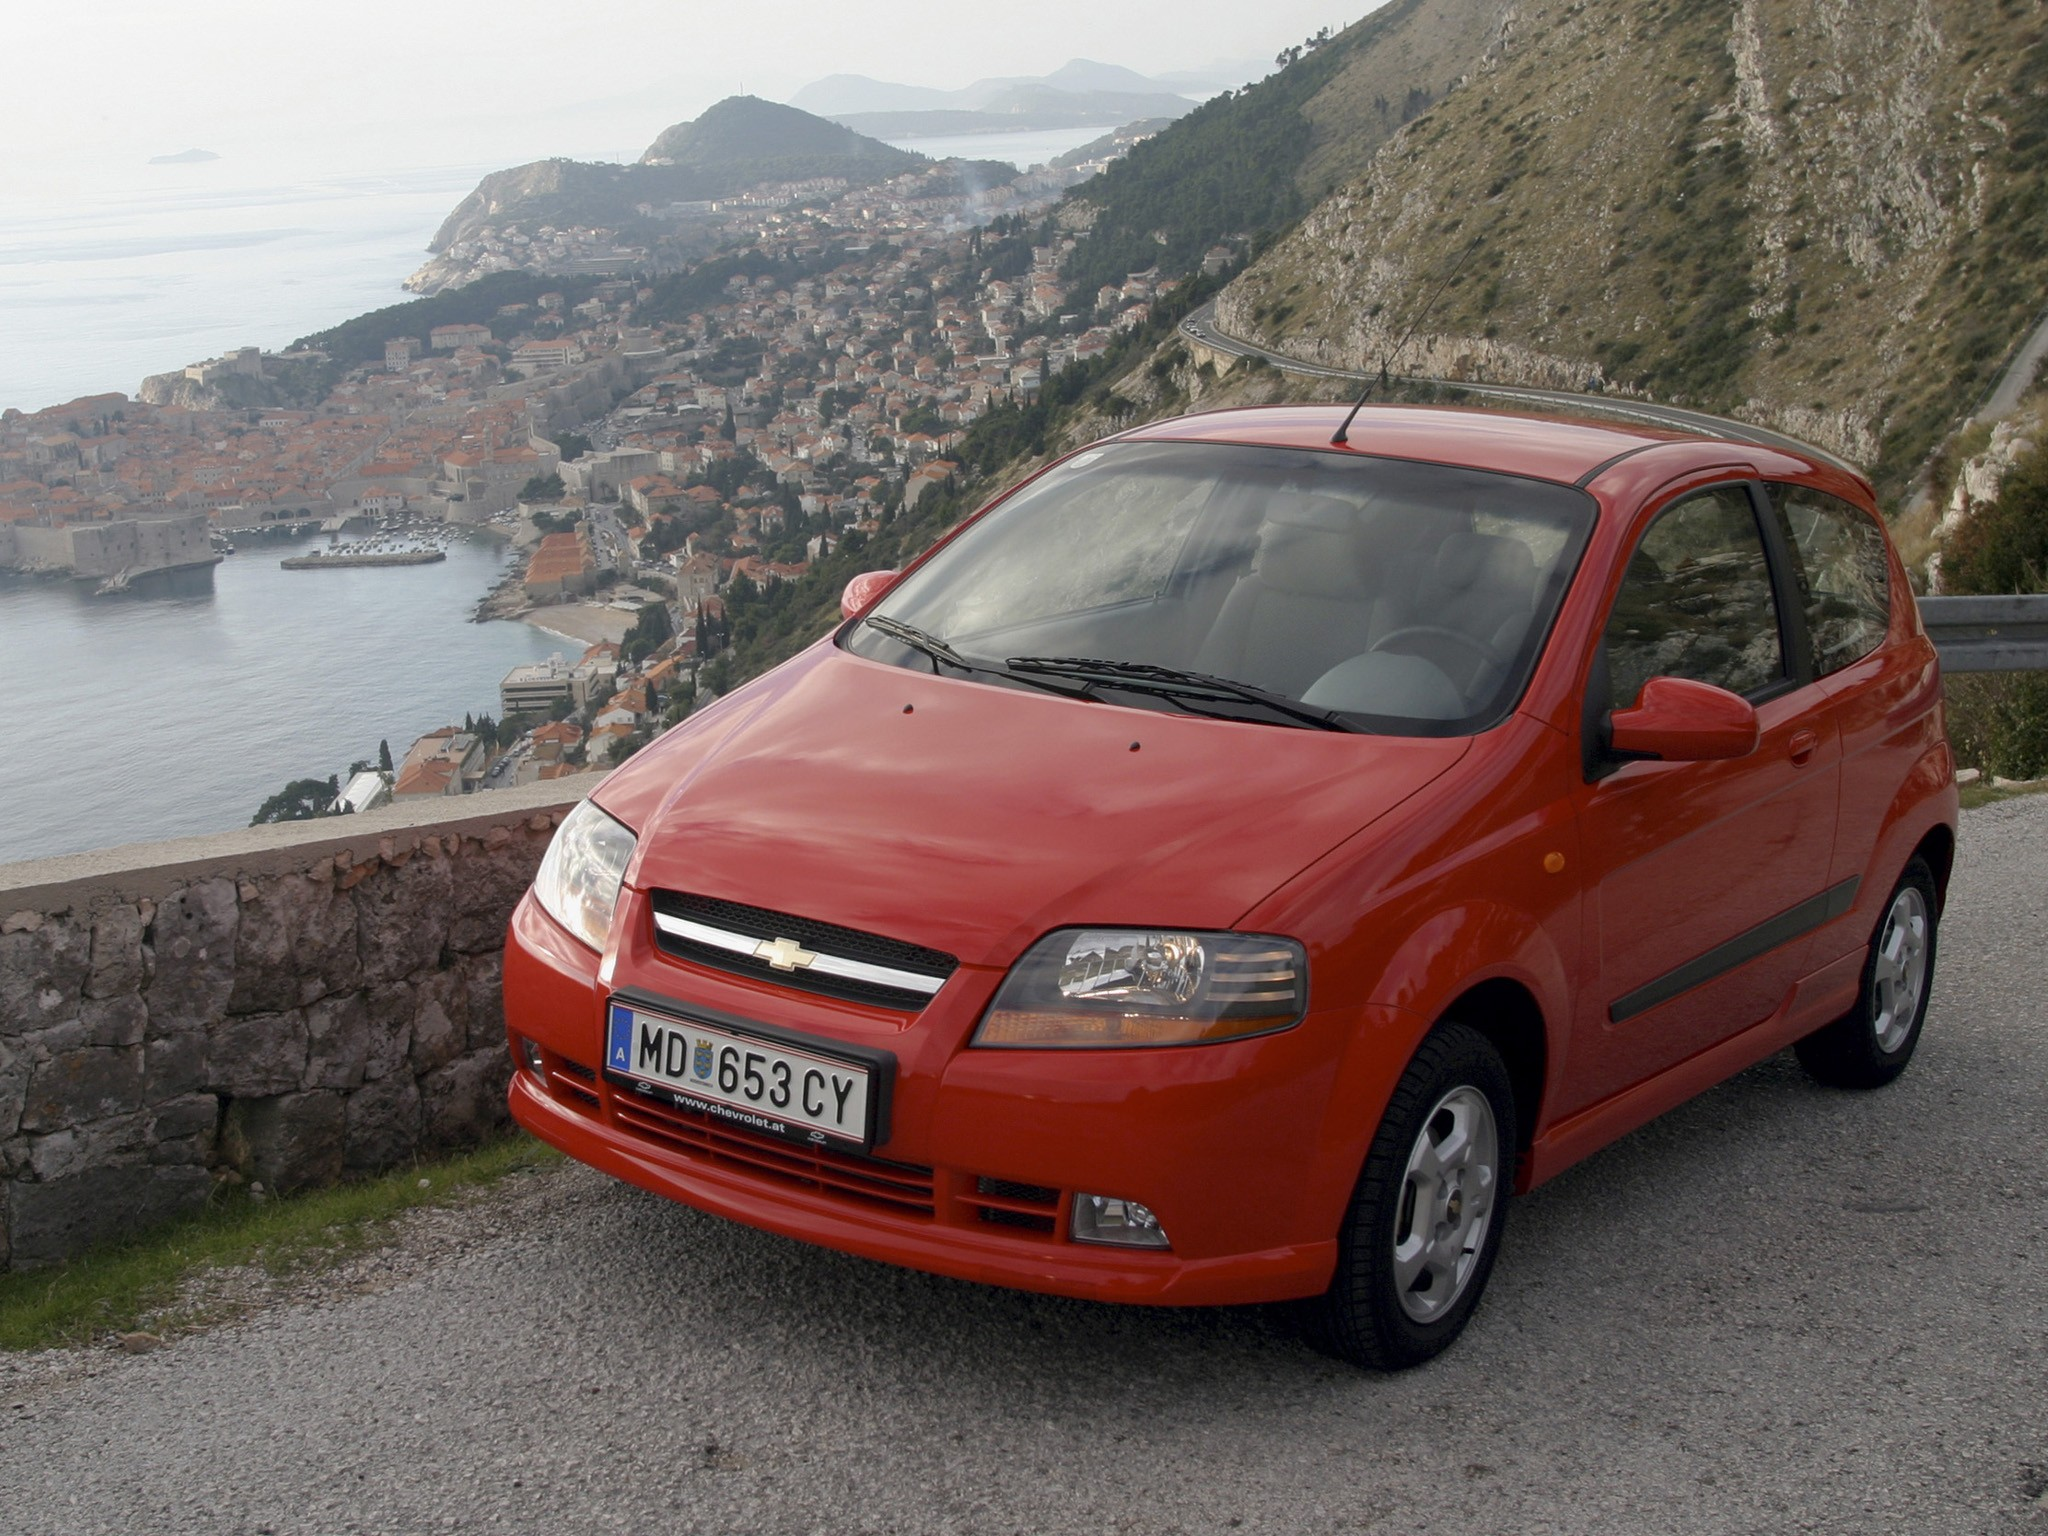 CHEVROLET Aveo/Kalos 3 Doors specs & photos - 2004, 2005, 2006, 2007 - autoevolution